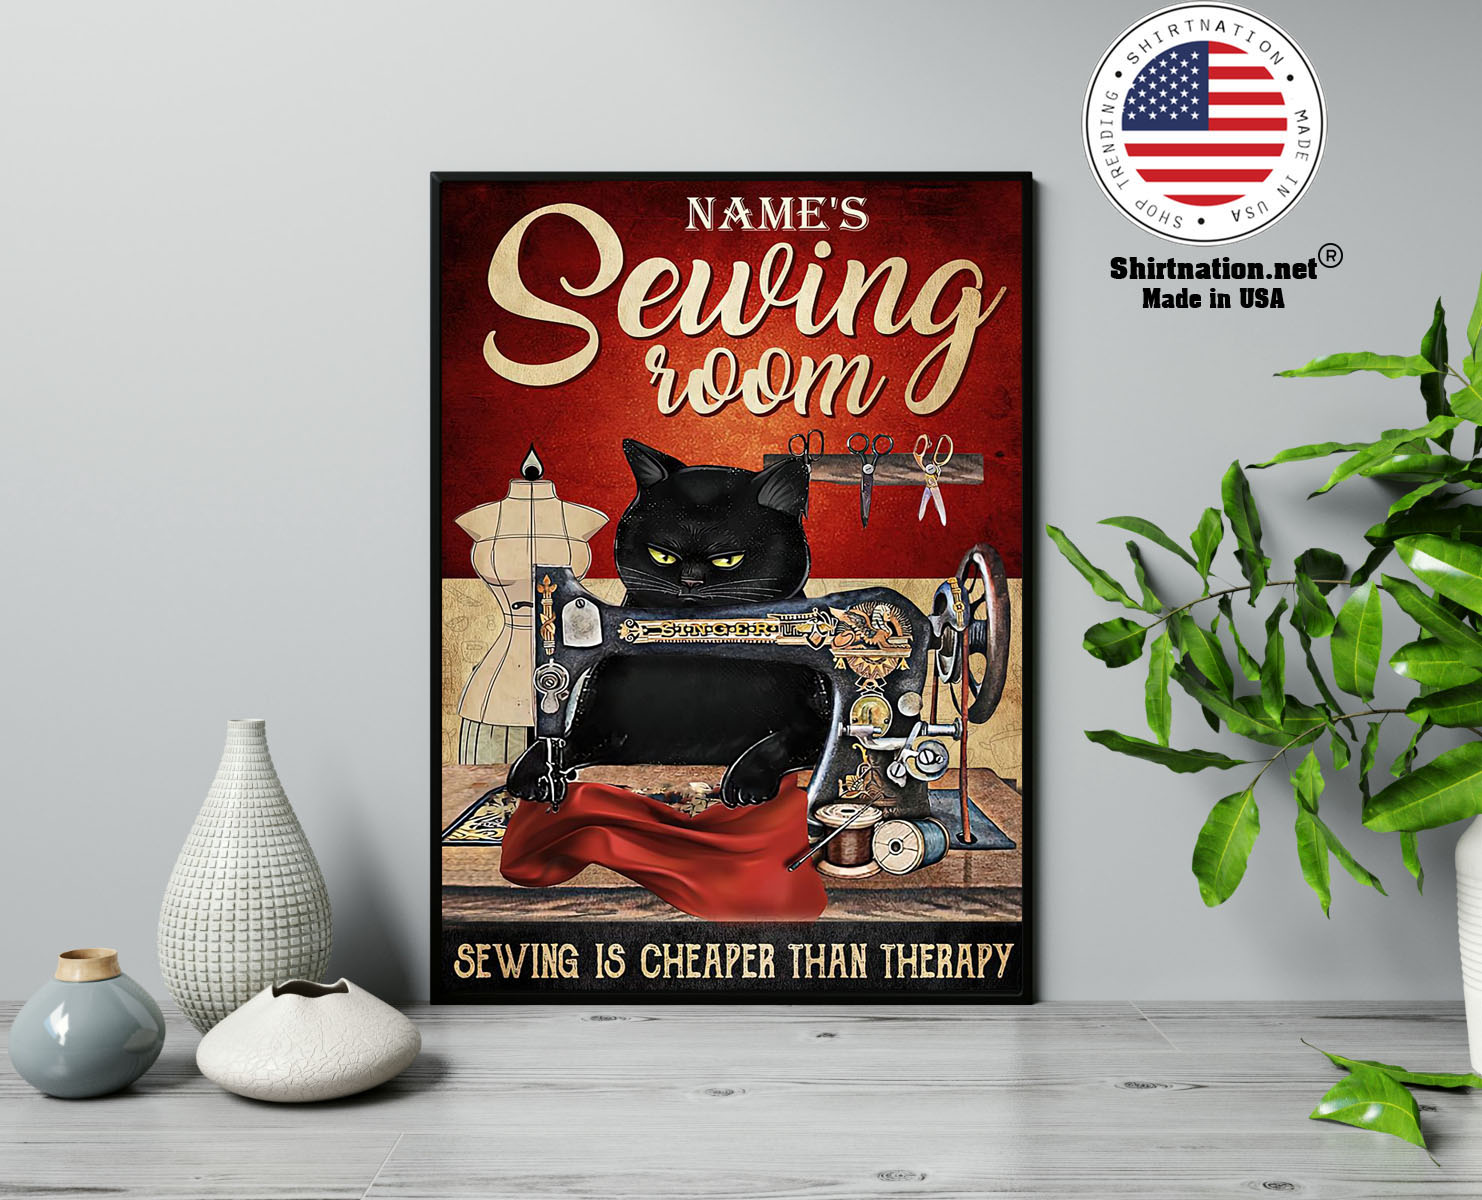 Sewing room sewing is cheaper than therapy poster 13